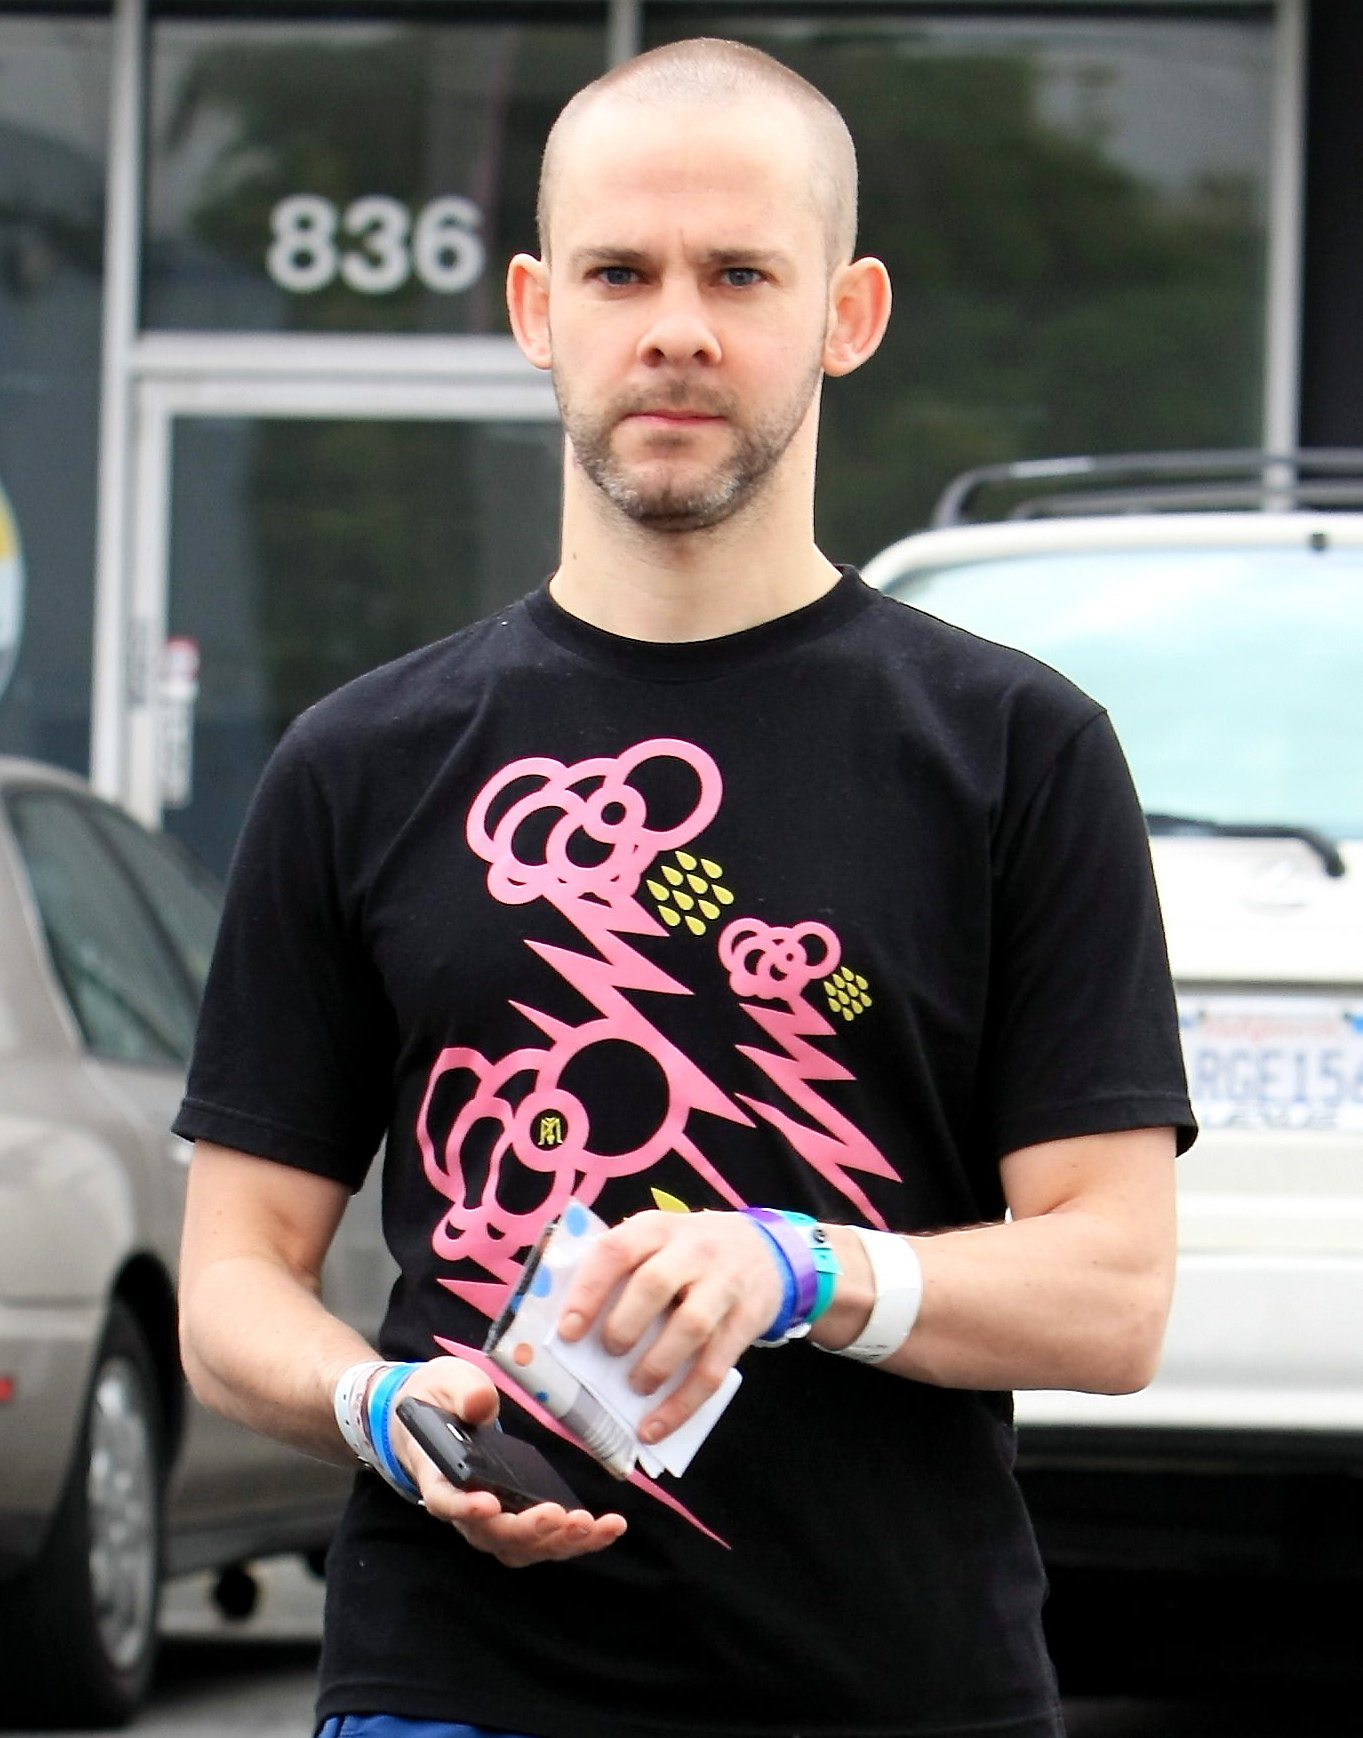 Dom with bald head, black t-shirt with pink scribbles, and blue trackpants.